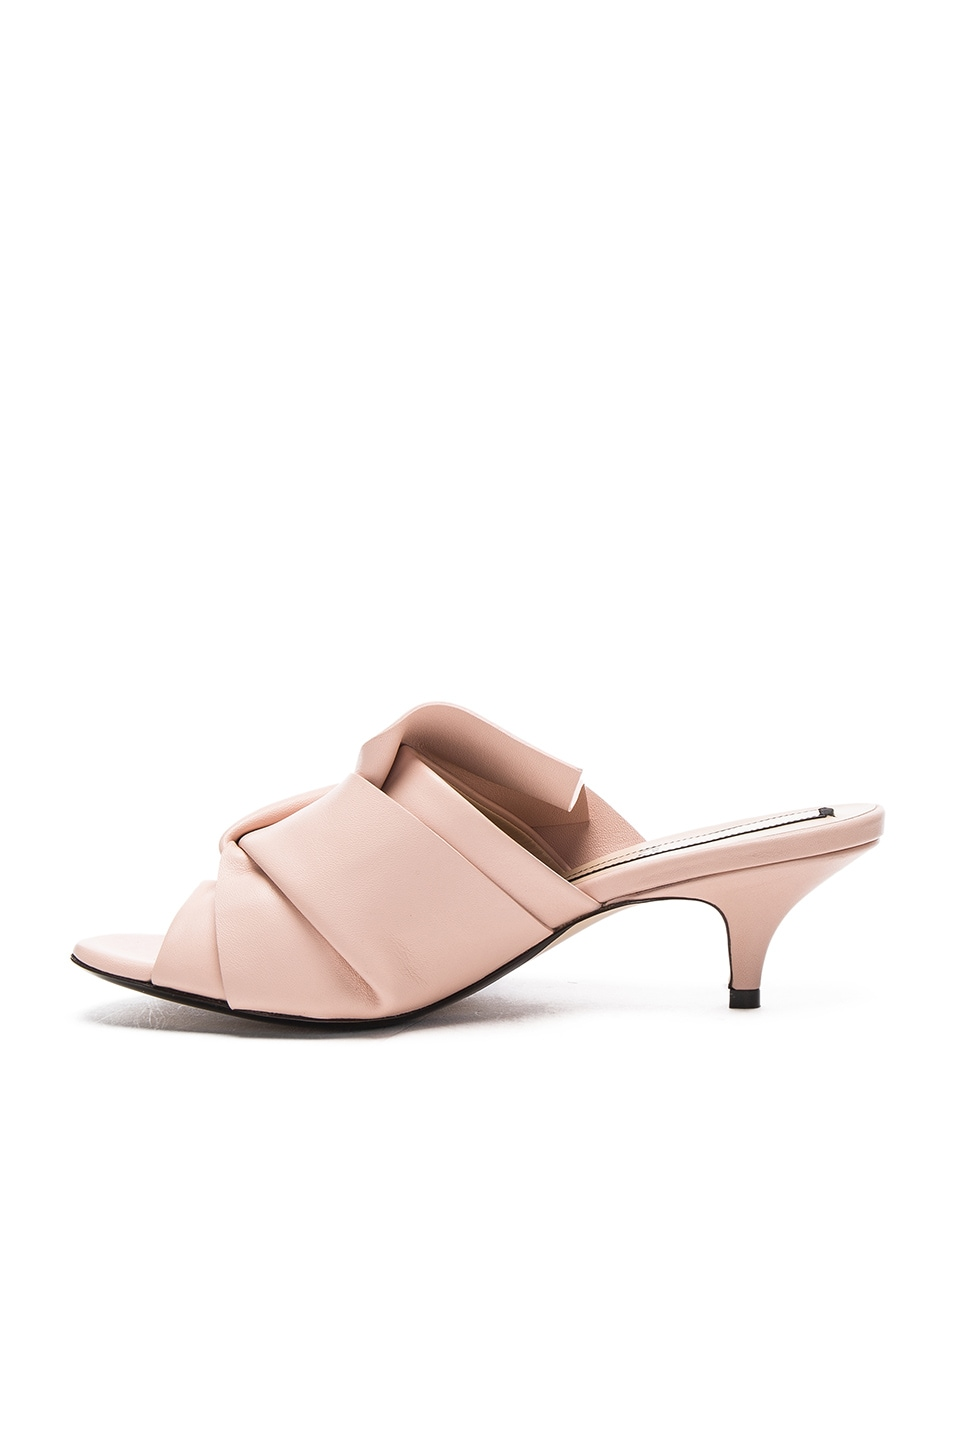 Image 5 of No. 21 Bow Kitten Heel Mule in Nude Leather